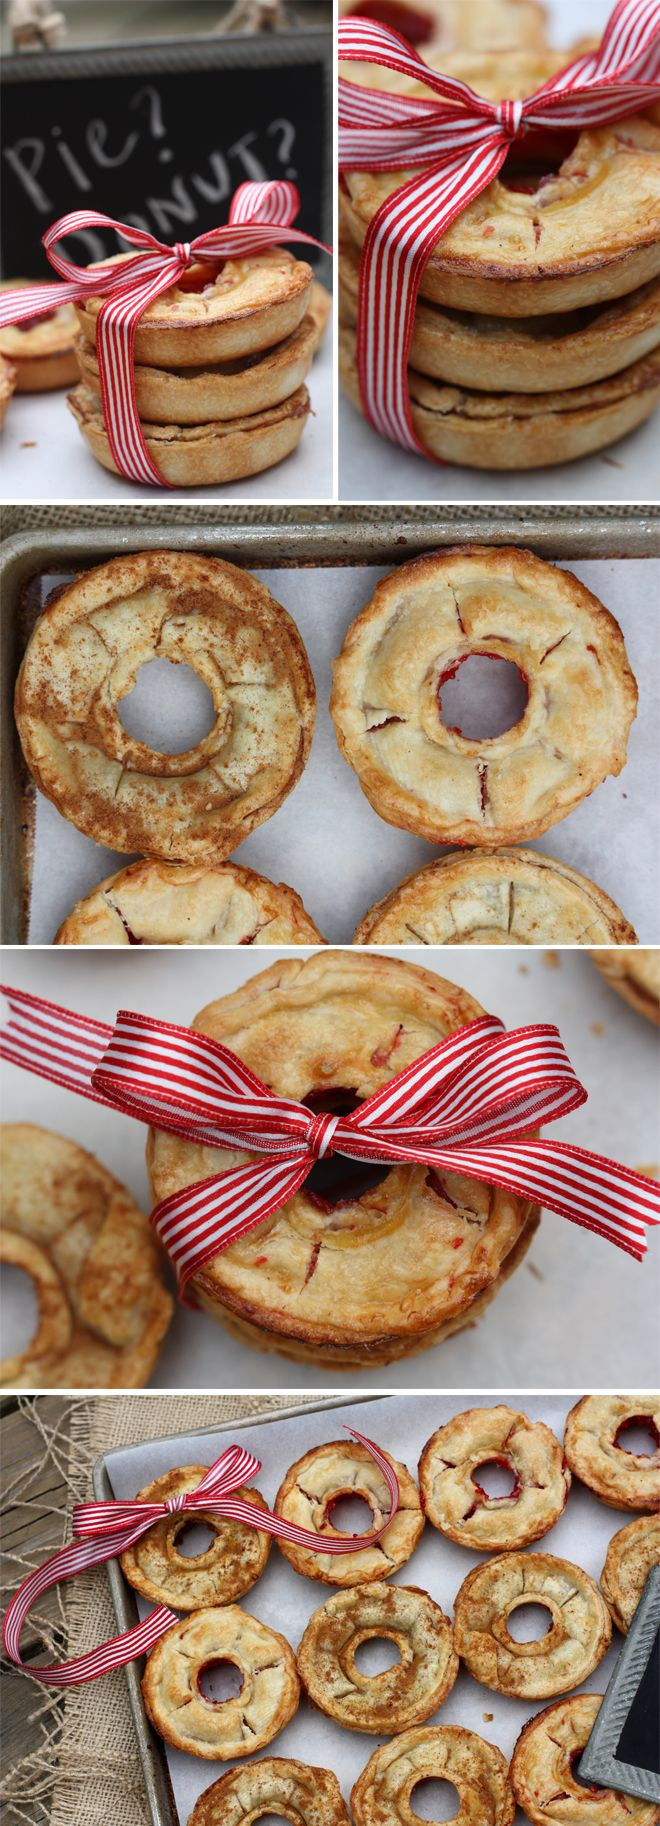 Donut-Shaped Pies!! Aren't these cool? Love the little bowed bundles, what wonderful gifts.